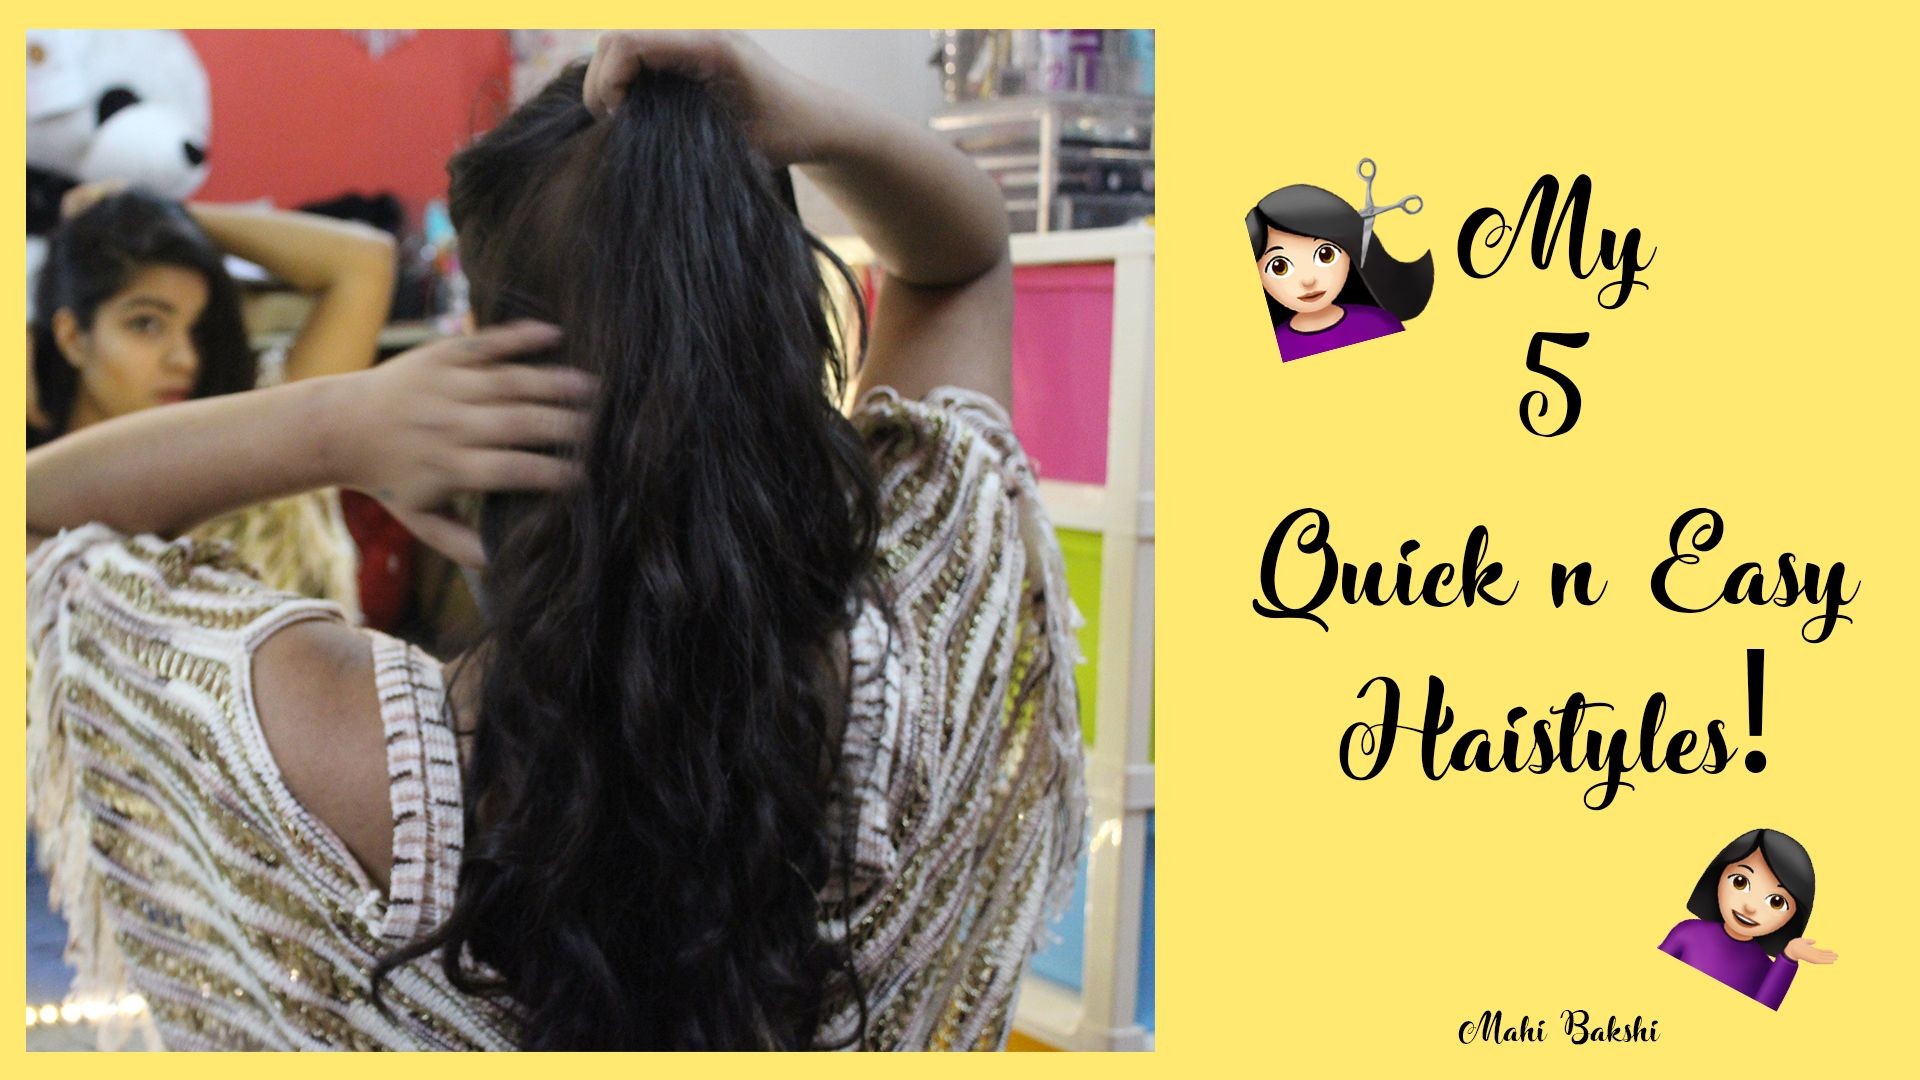 Watch The Video For Some Cute Quick N Easy Hairstyles 3